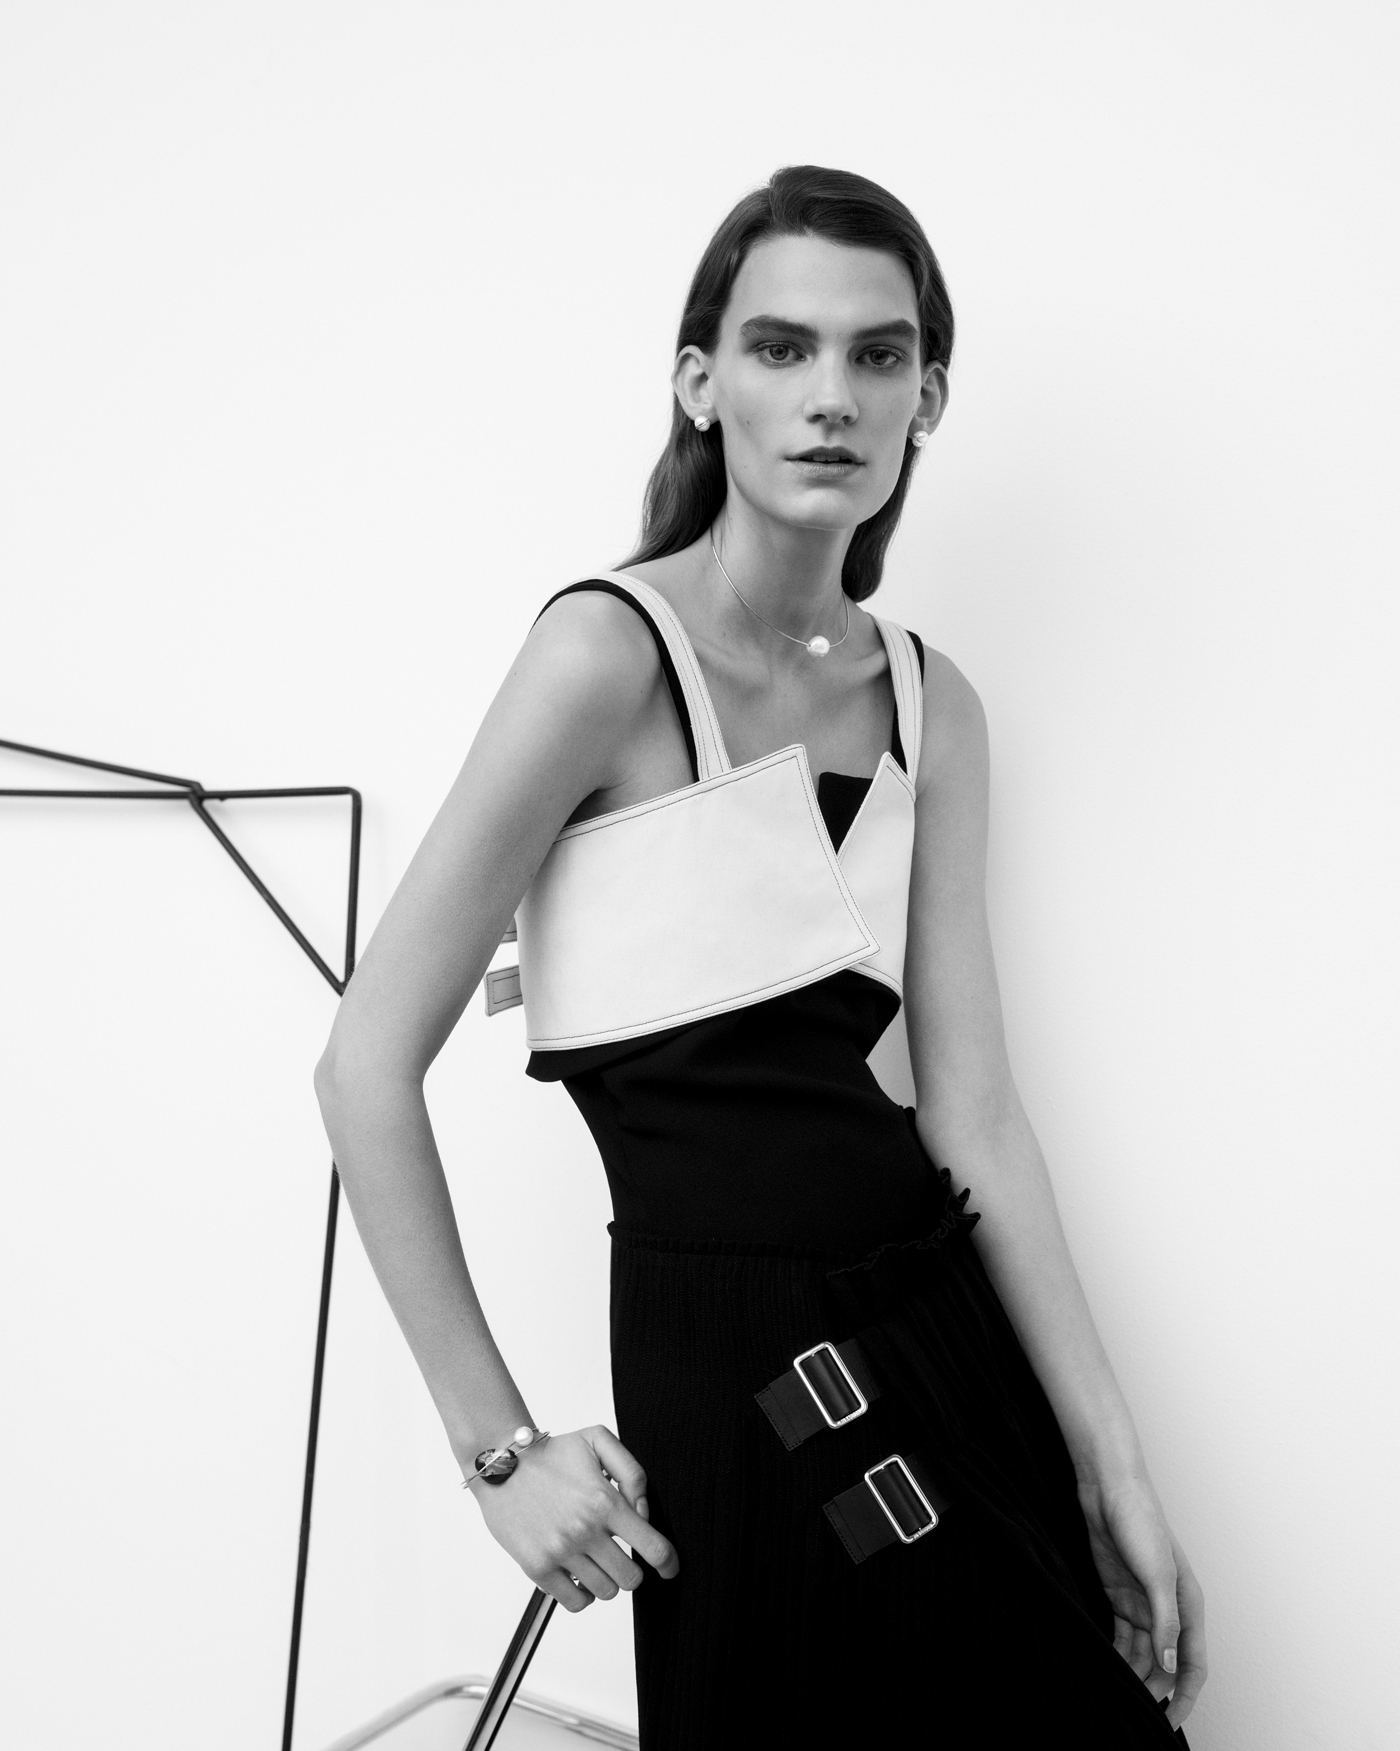 All clothing by Jil Sander. All jewelry by Mary MacGill.